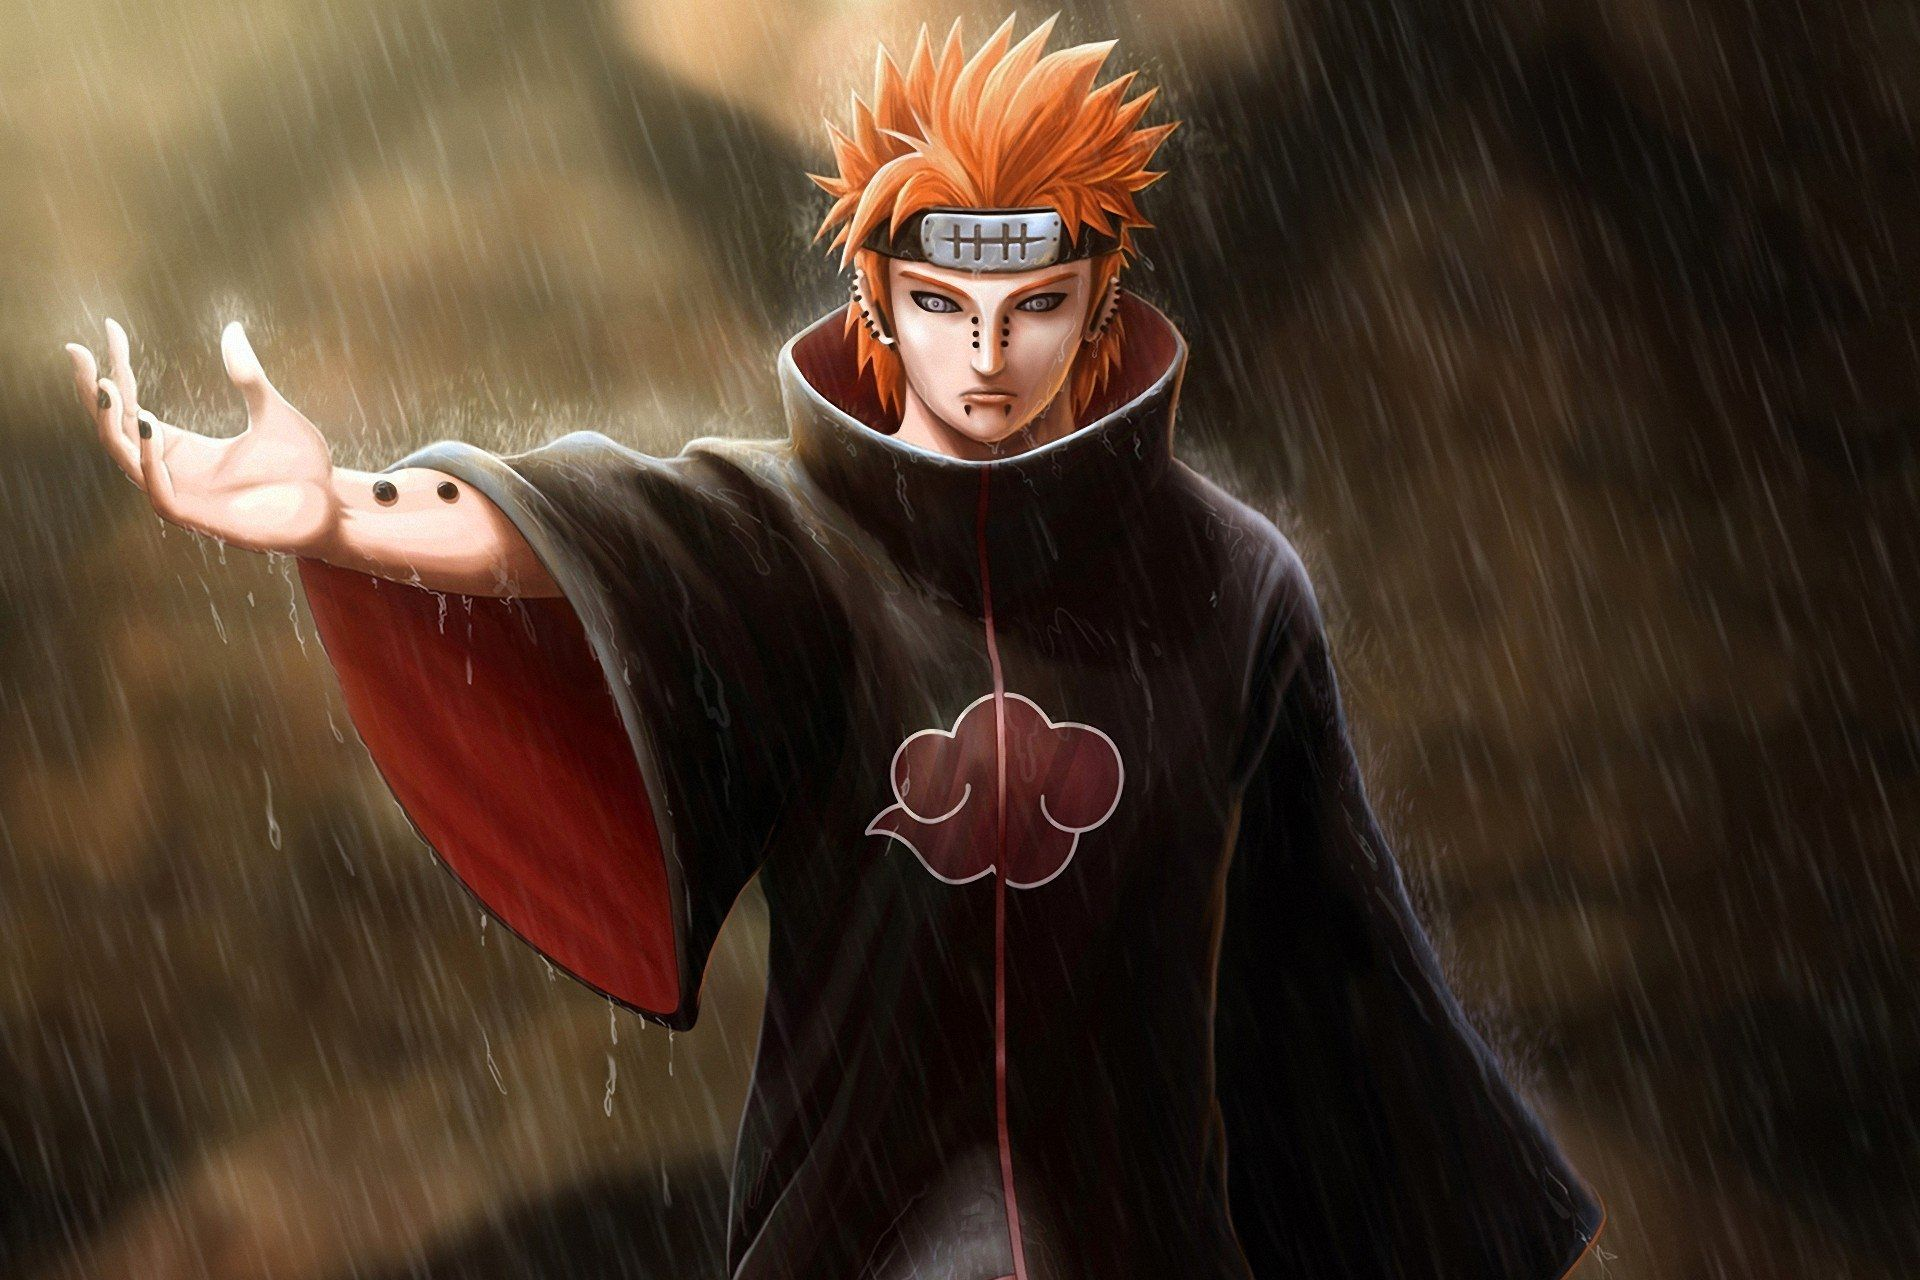 Naruto Shippuden 4k Wallpaper Download Di 2020 Dengan Gambar